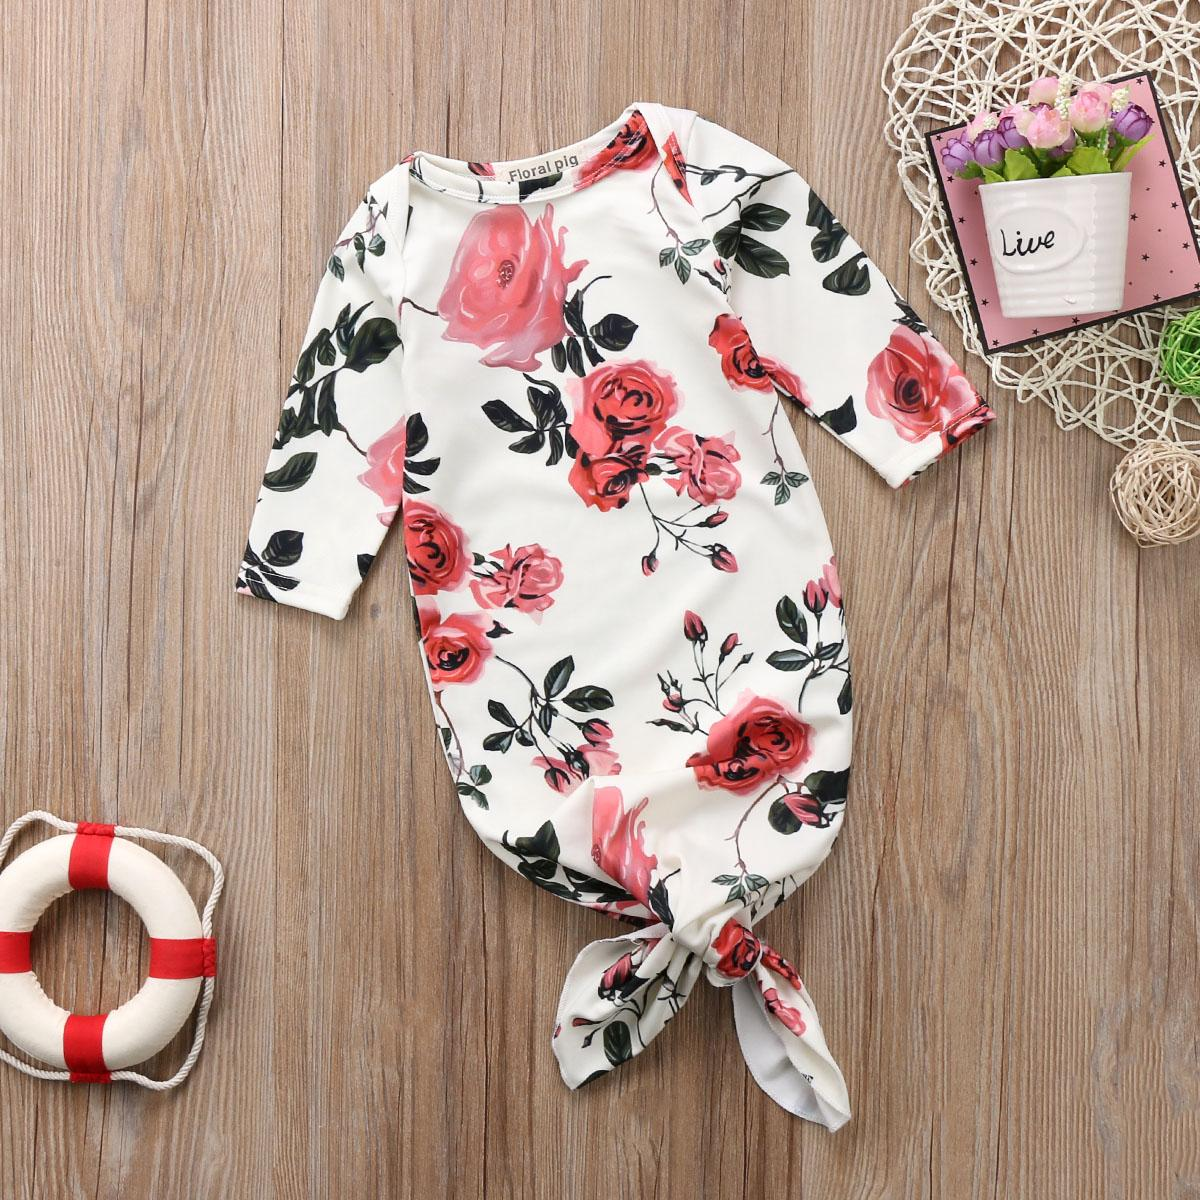 New Fashion 100% Premium Newborn Baby Print Infant Swaddle Blanket Sleeping Swaddle Wrap Baby Clothes